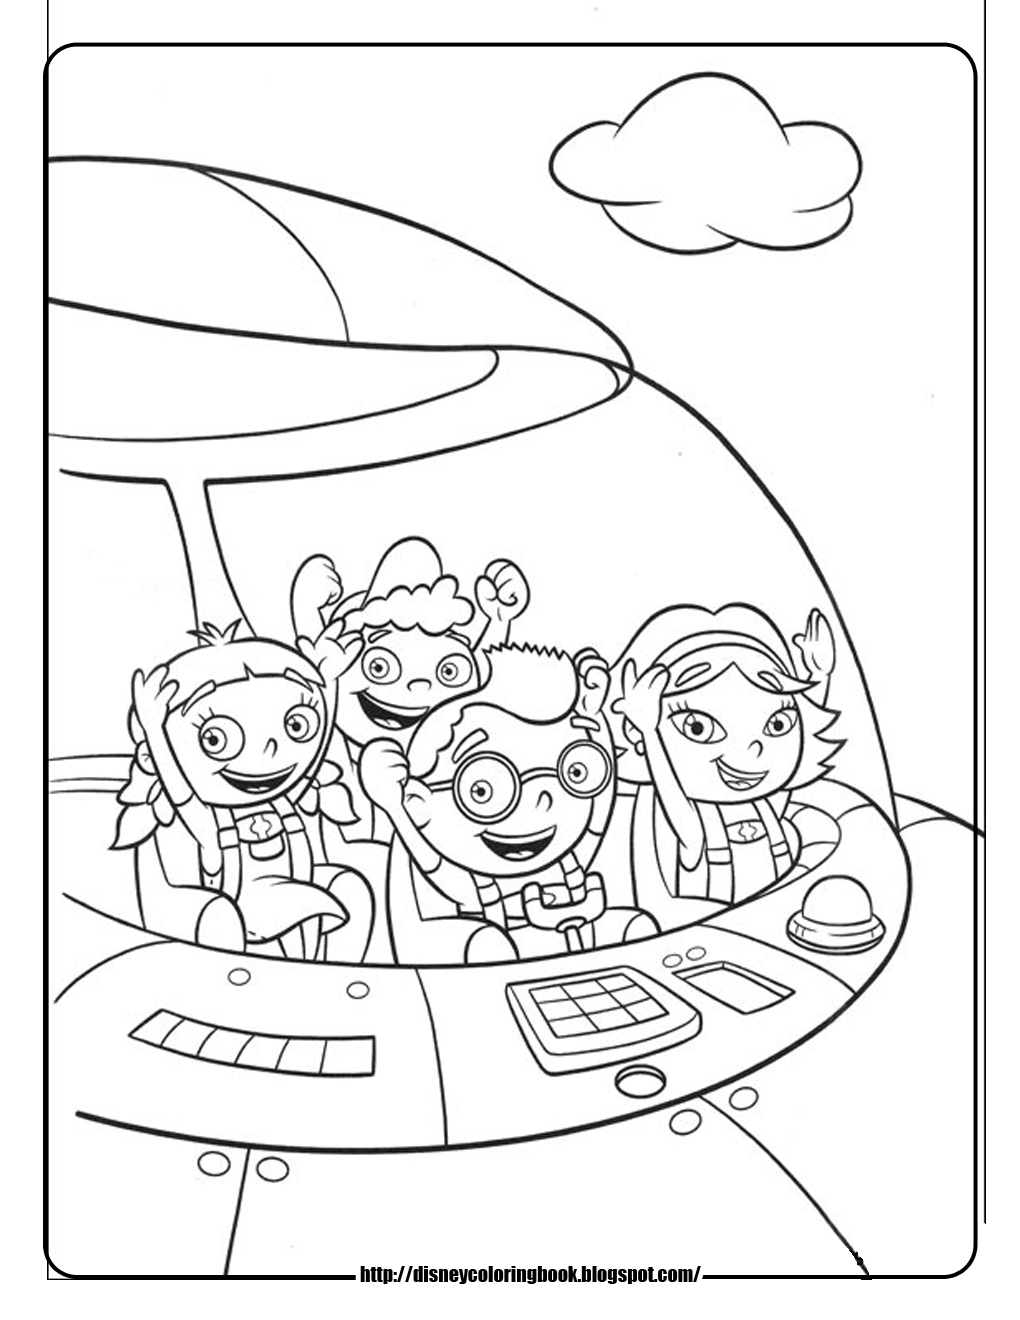 disney junior coloring pages - disney coloring pages and sheets for kids little